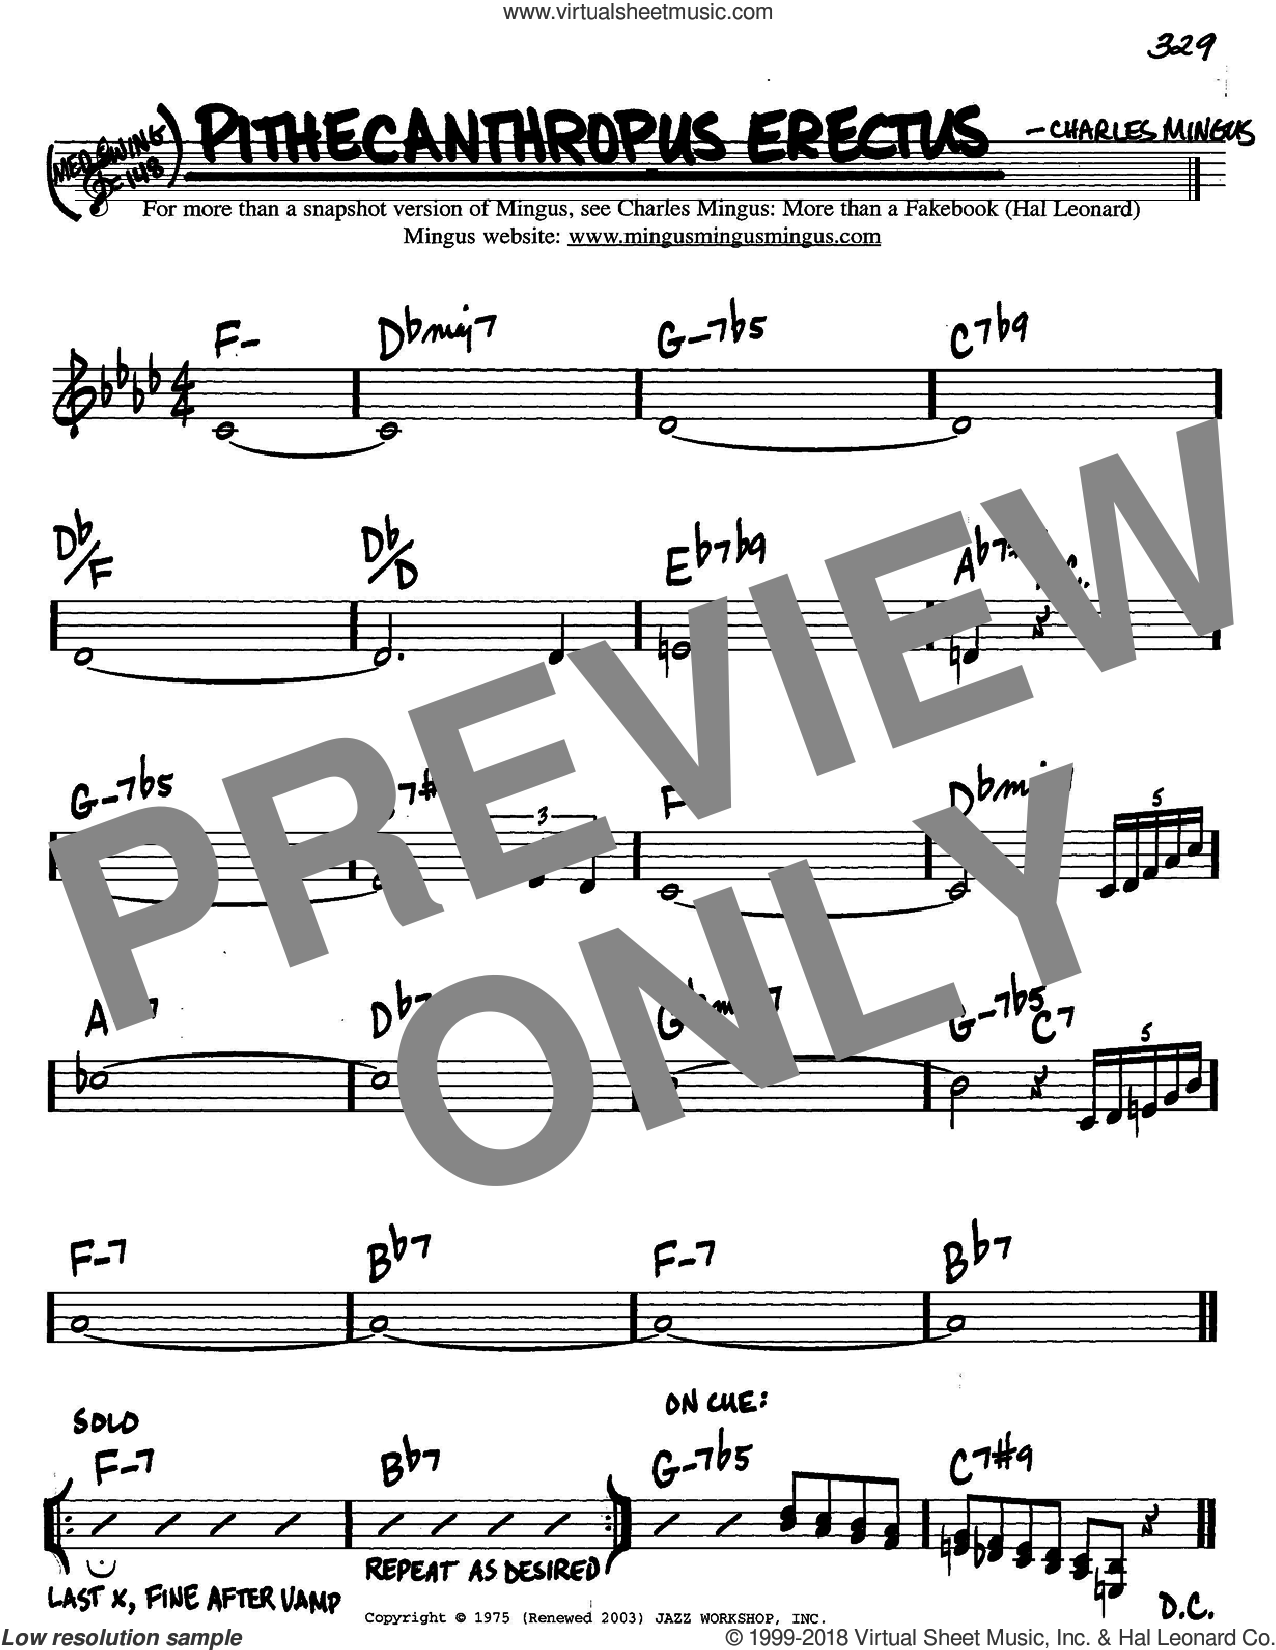 Pithecanthropus Erectus sheet music for voice and other instruments (C) by Charles Mingus, intermediate voice. Score Image Preview.